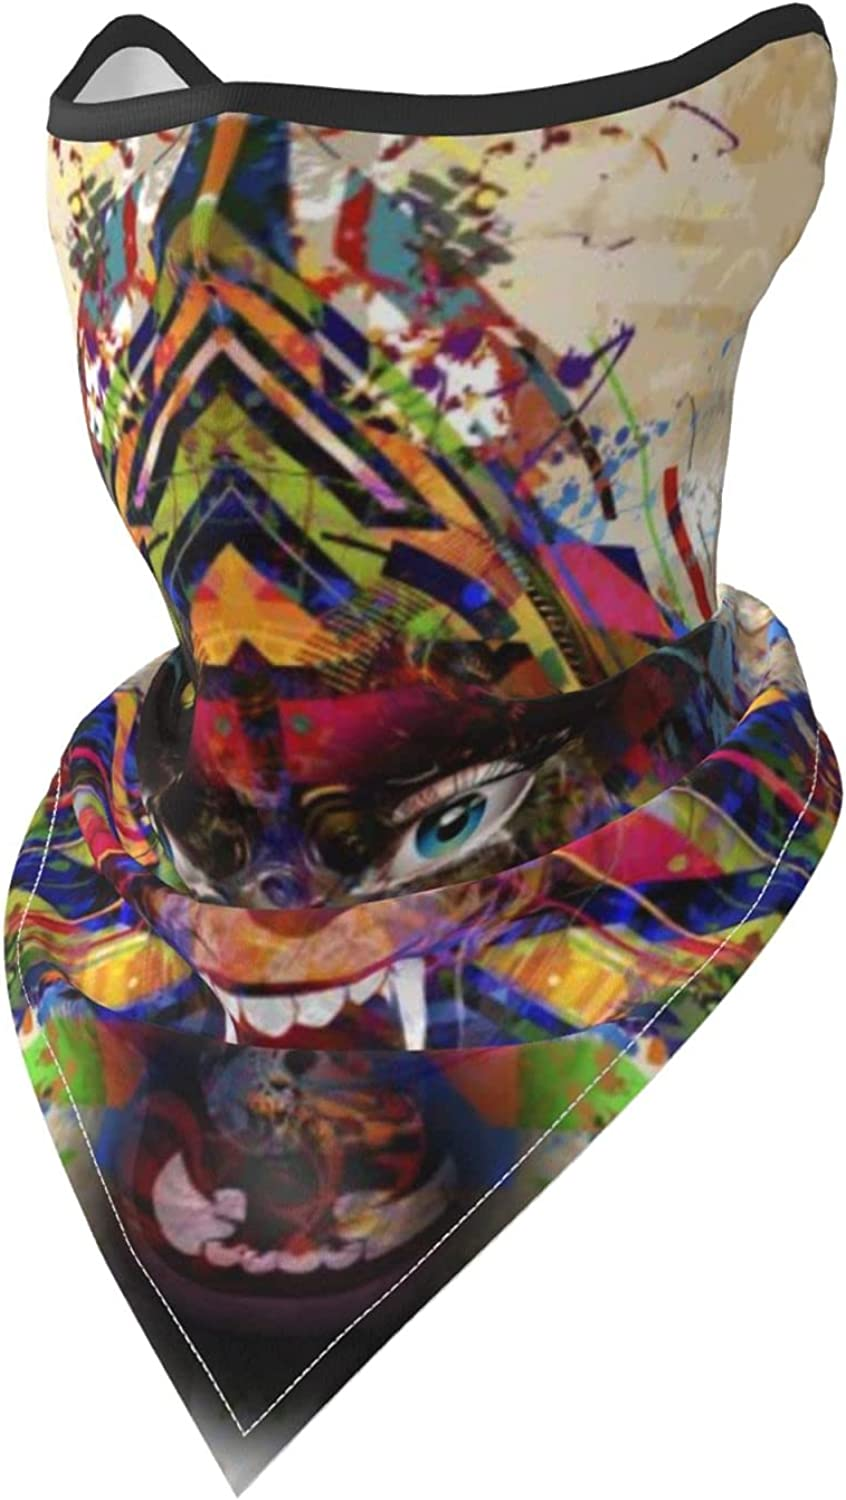 Wolf Howling Animal Face Colorful-3 Breathable Bandana Face Mask Neck Gaiter Windproof Sports Mask Scarf Headwear for Men Women Outdoor Hiking Cycling Running Motorcycling